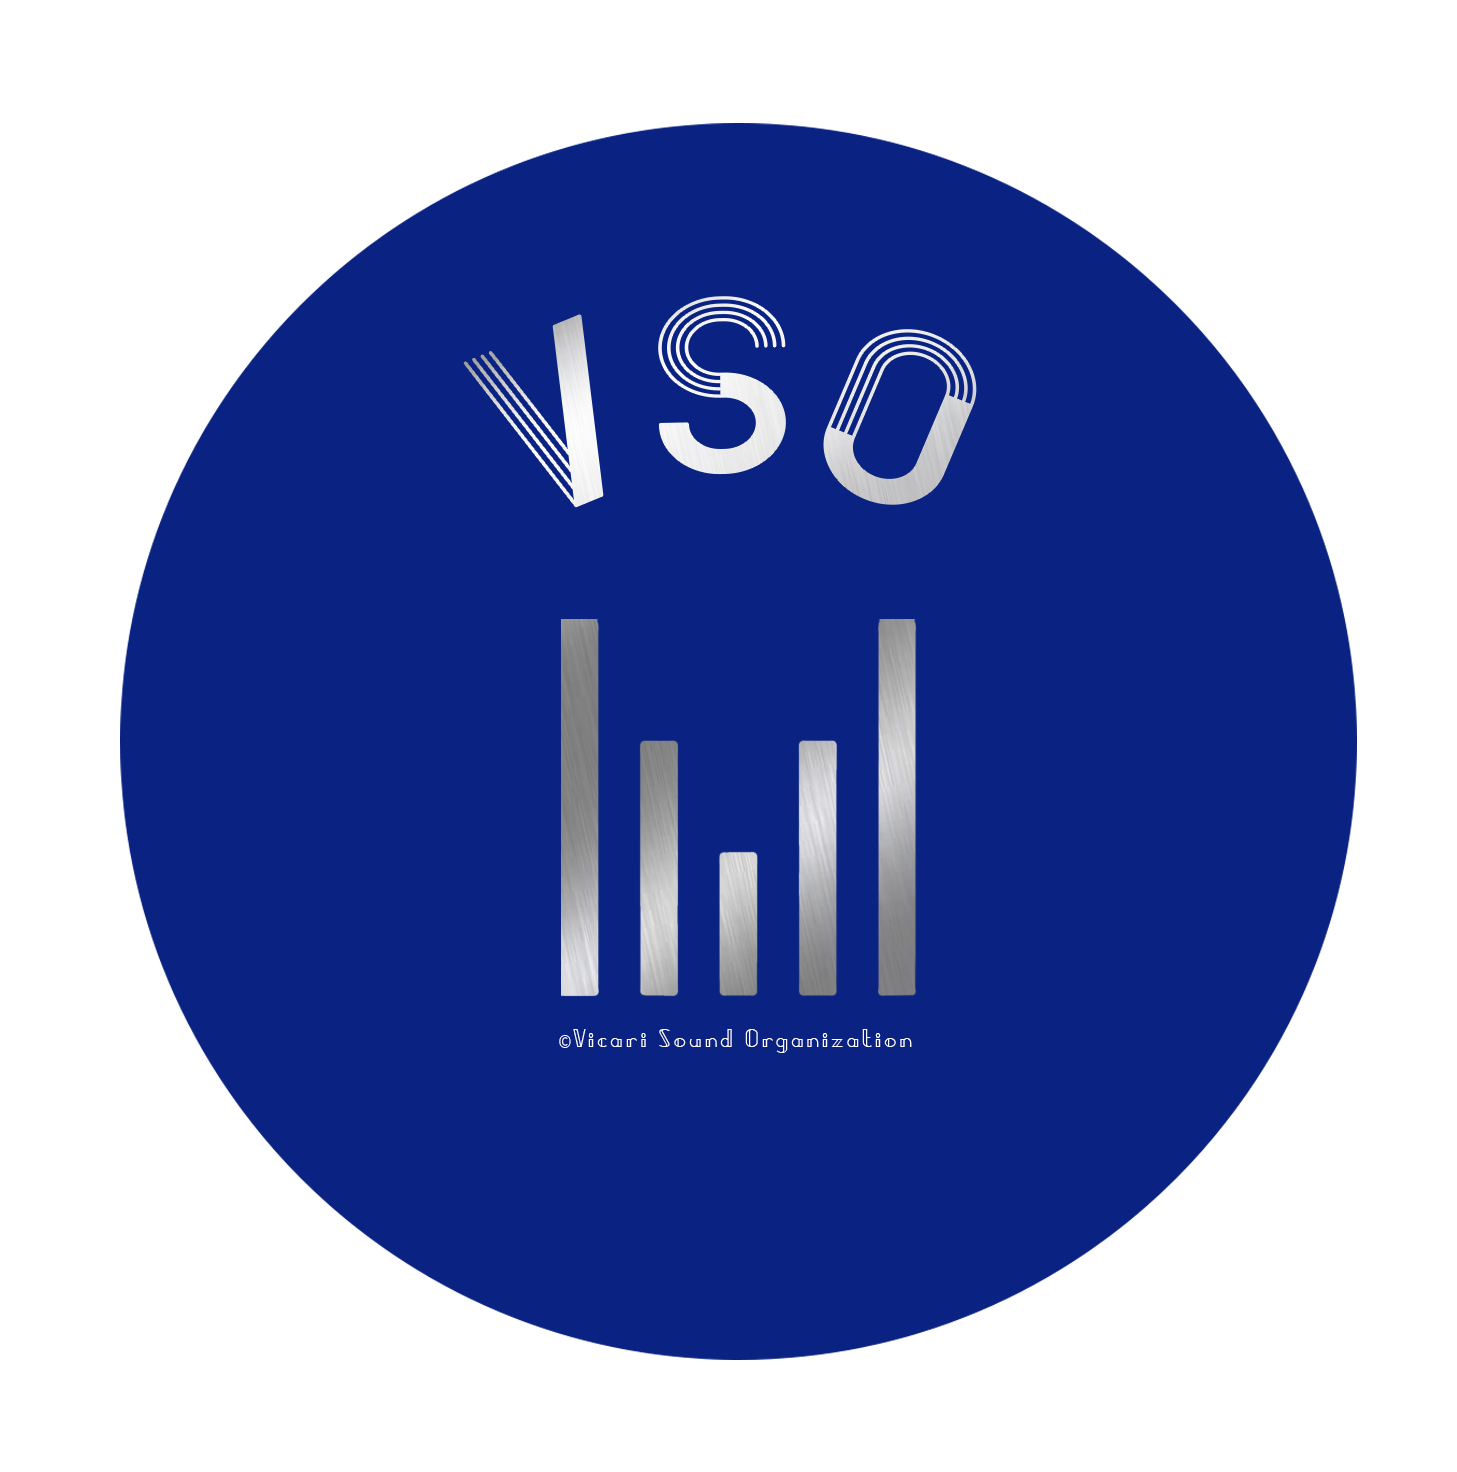 VSO LOGO 5 - Final V3.png